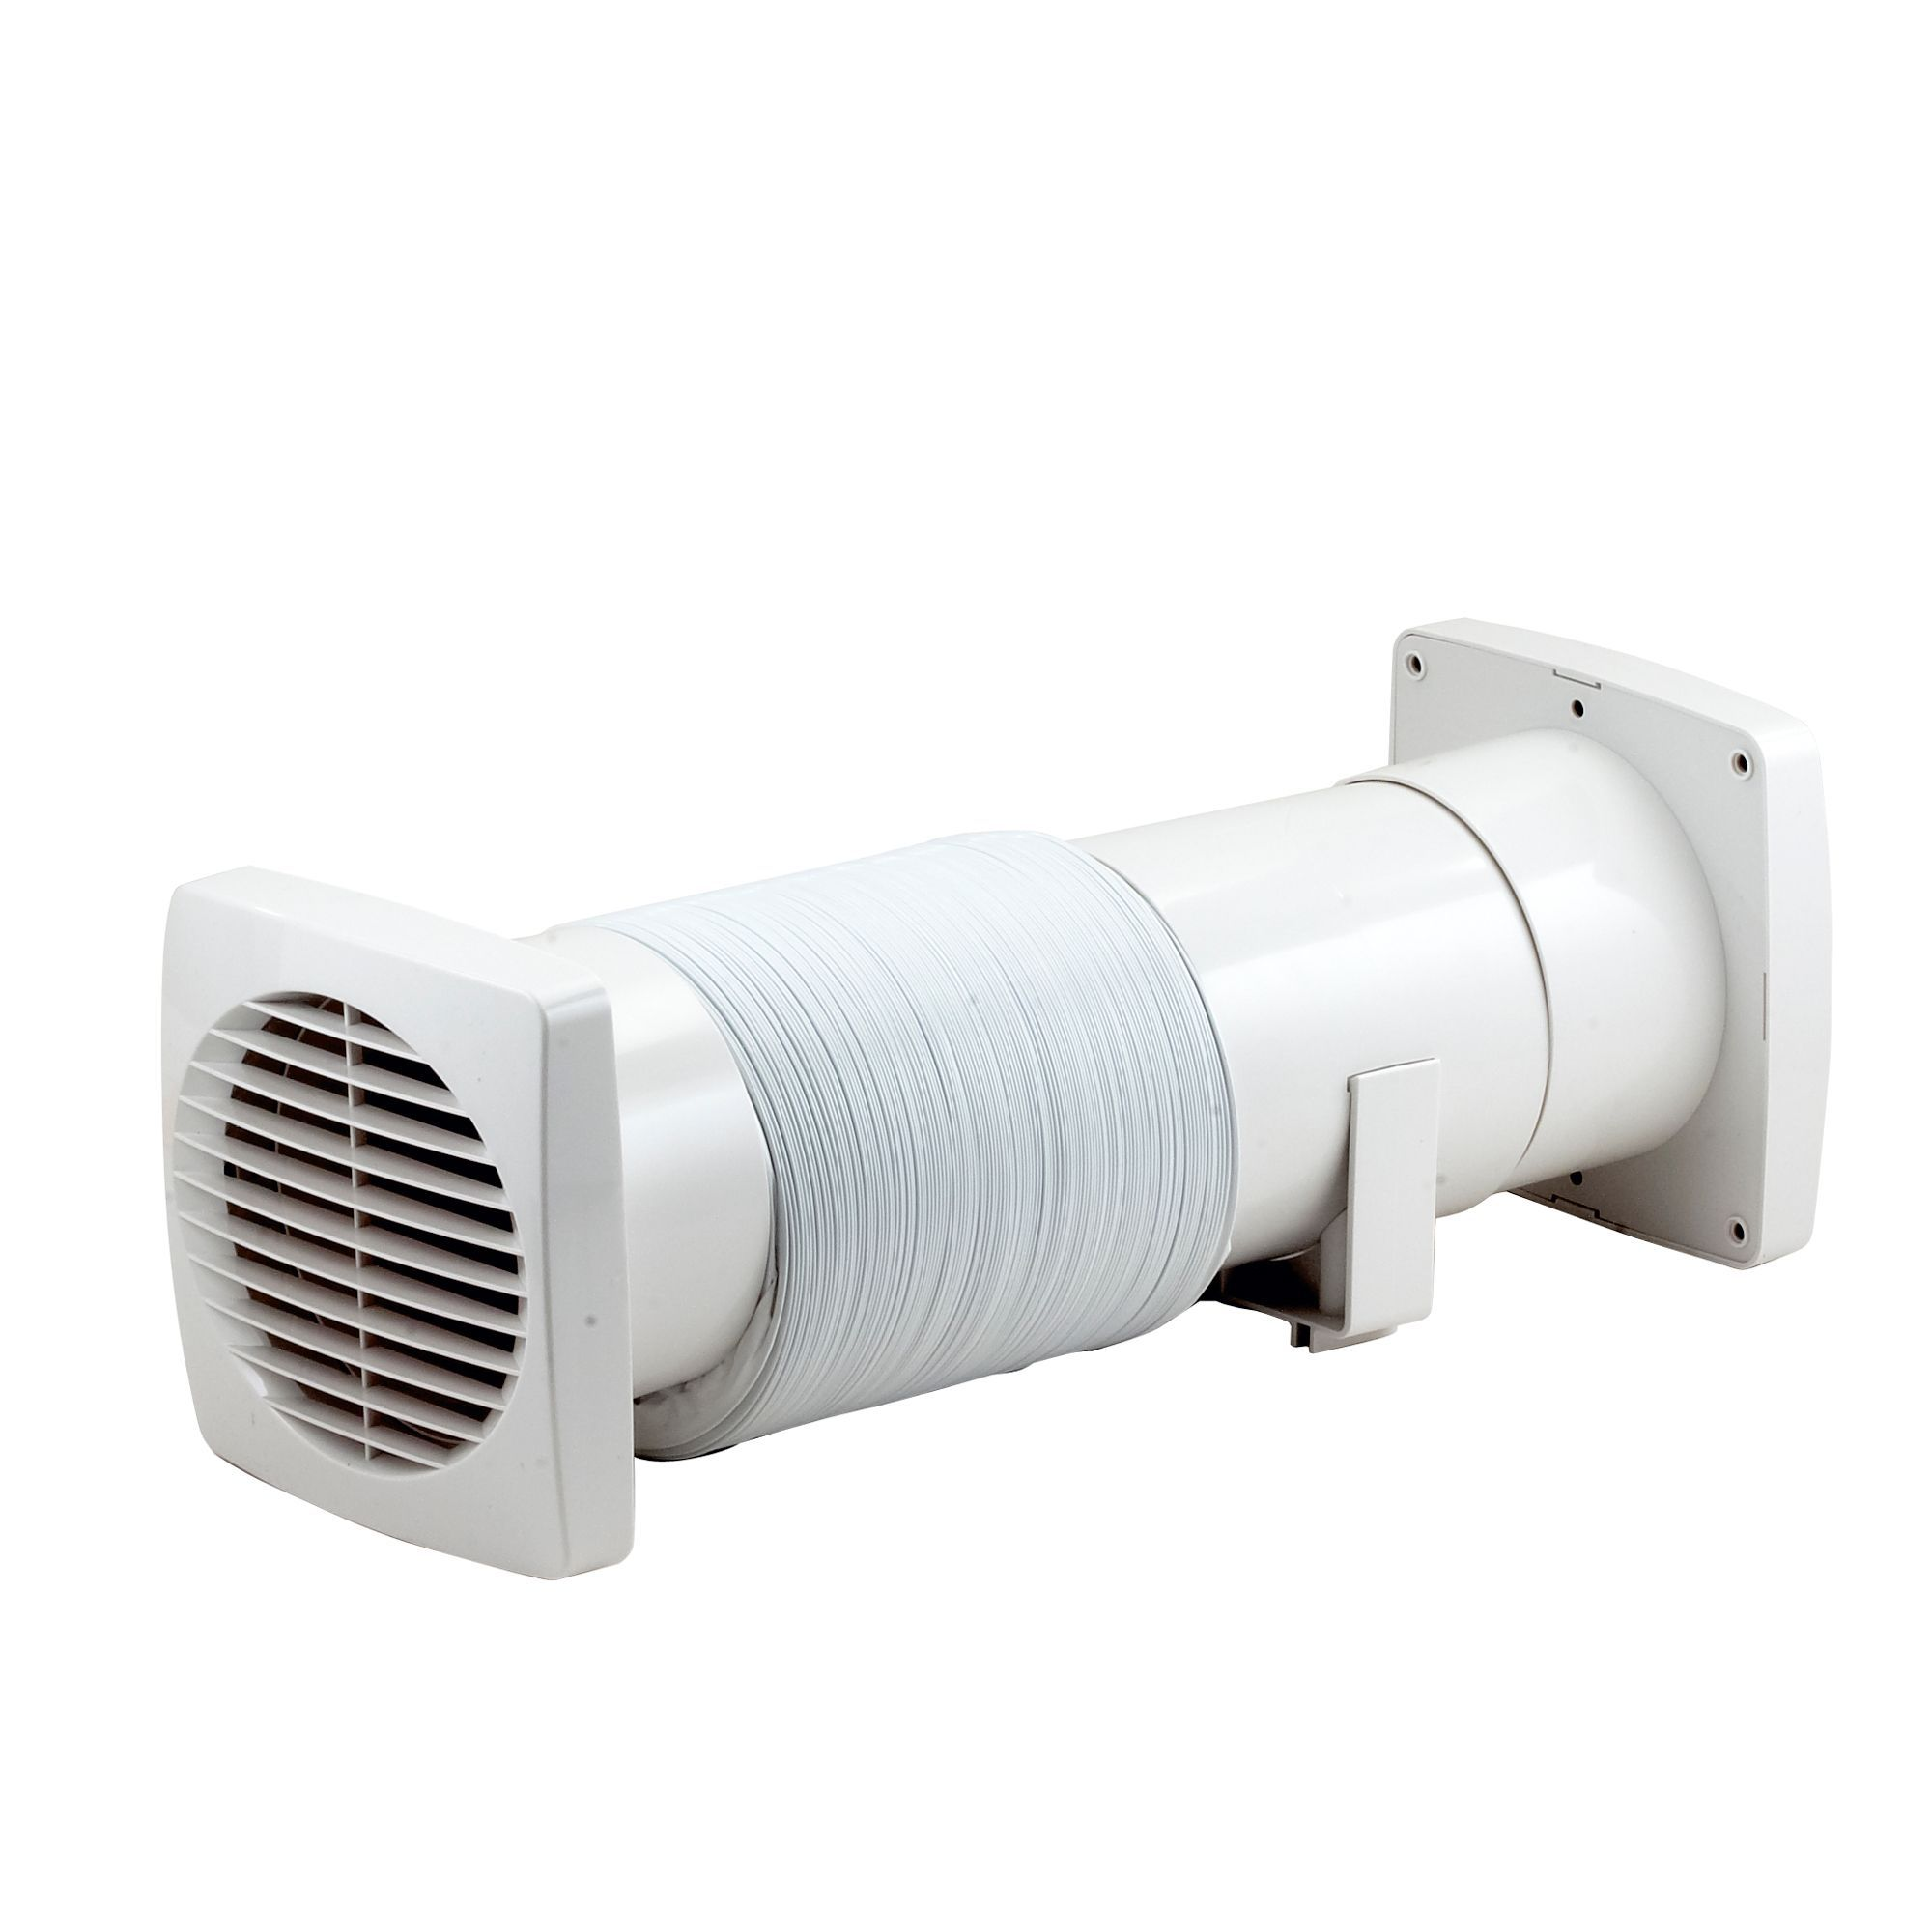 Bathroom extractor fans with timer - Manrose Vdisf100s Bathroom Shower Fan Extractor Fan Kit D 98mm